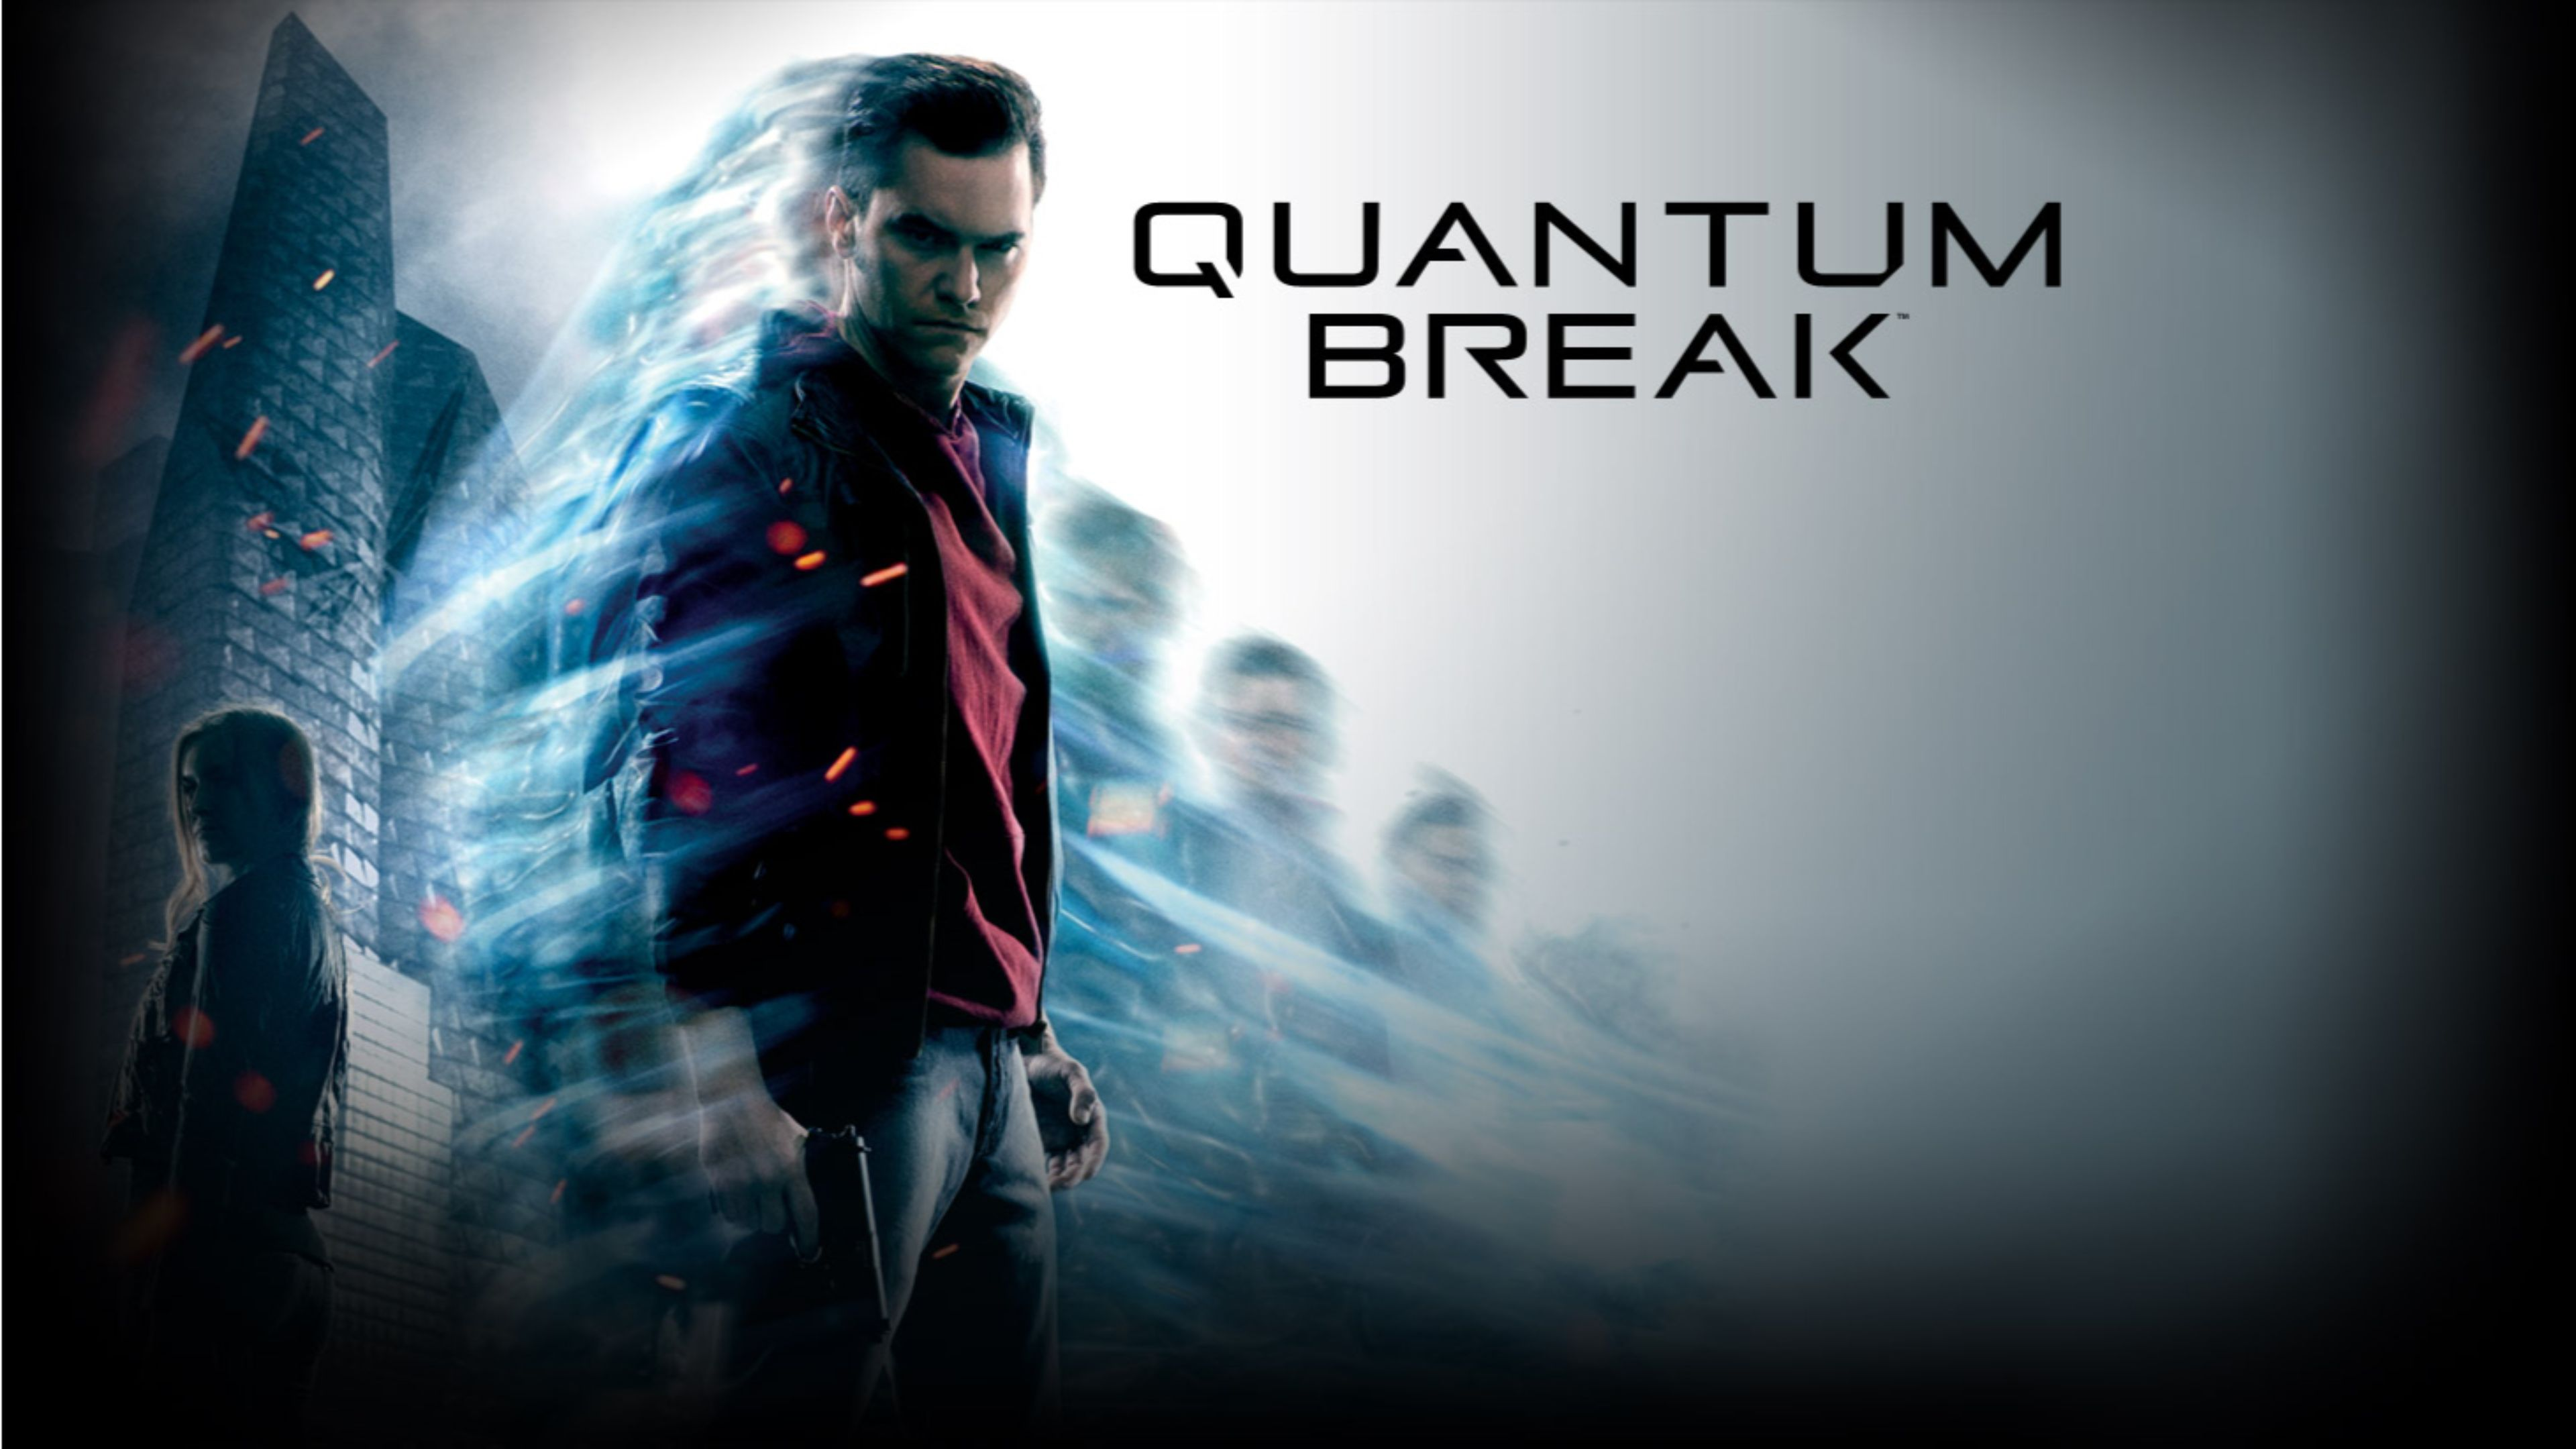 Quantum Break Backgrounds